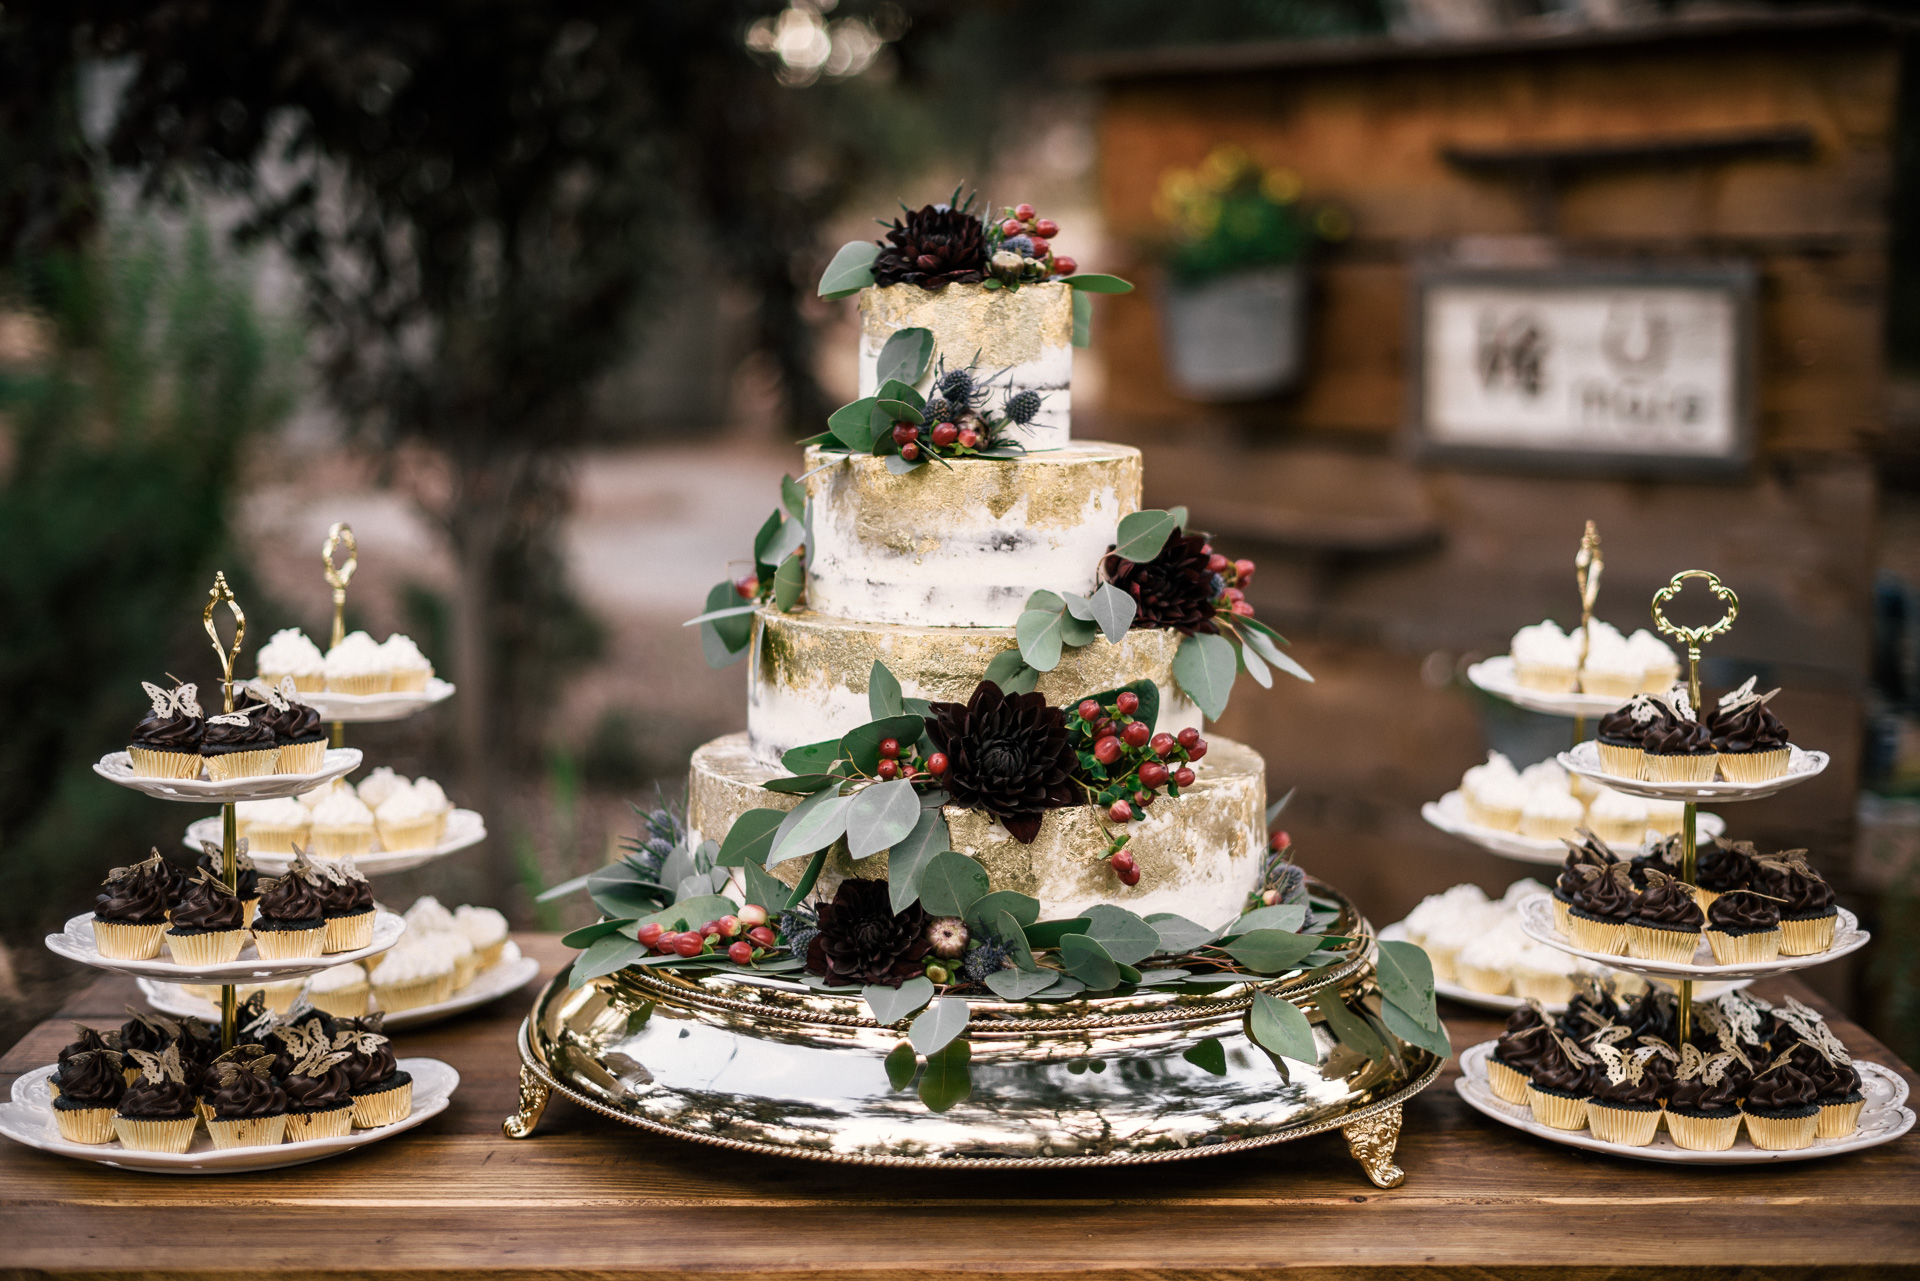 wedding cake with black flowers, gold leaf and eucalyptus details at rustic pymm ranch wedding venue in winchester california